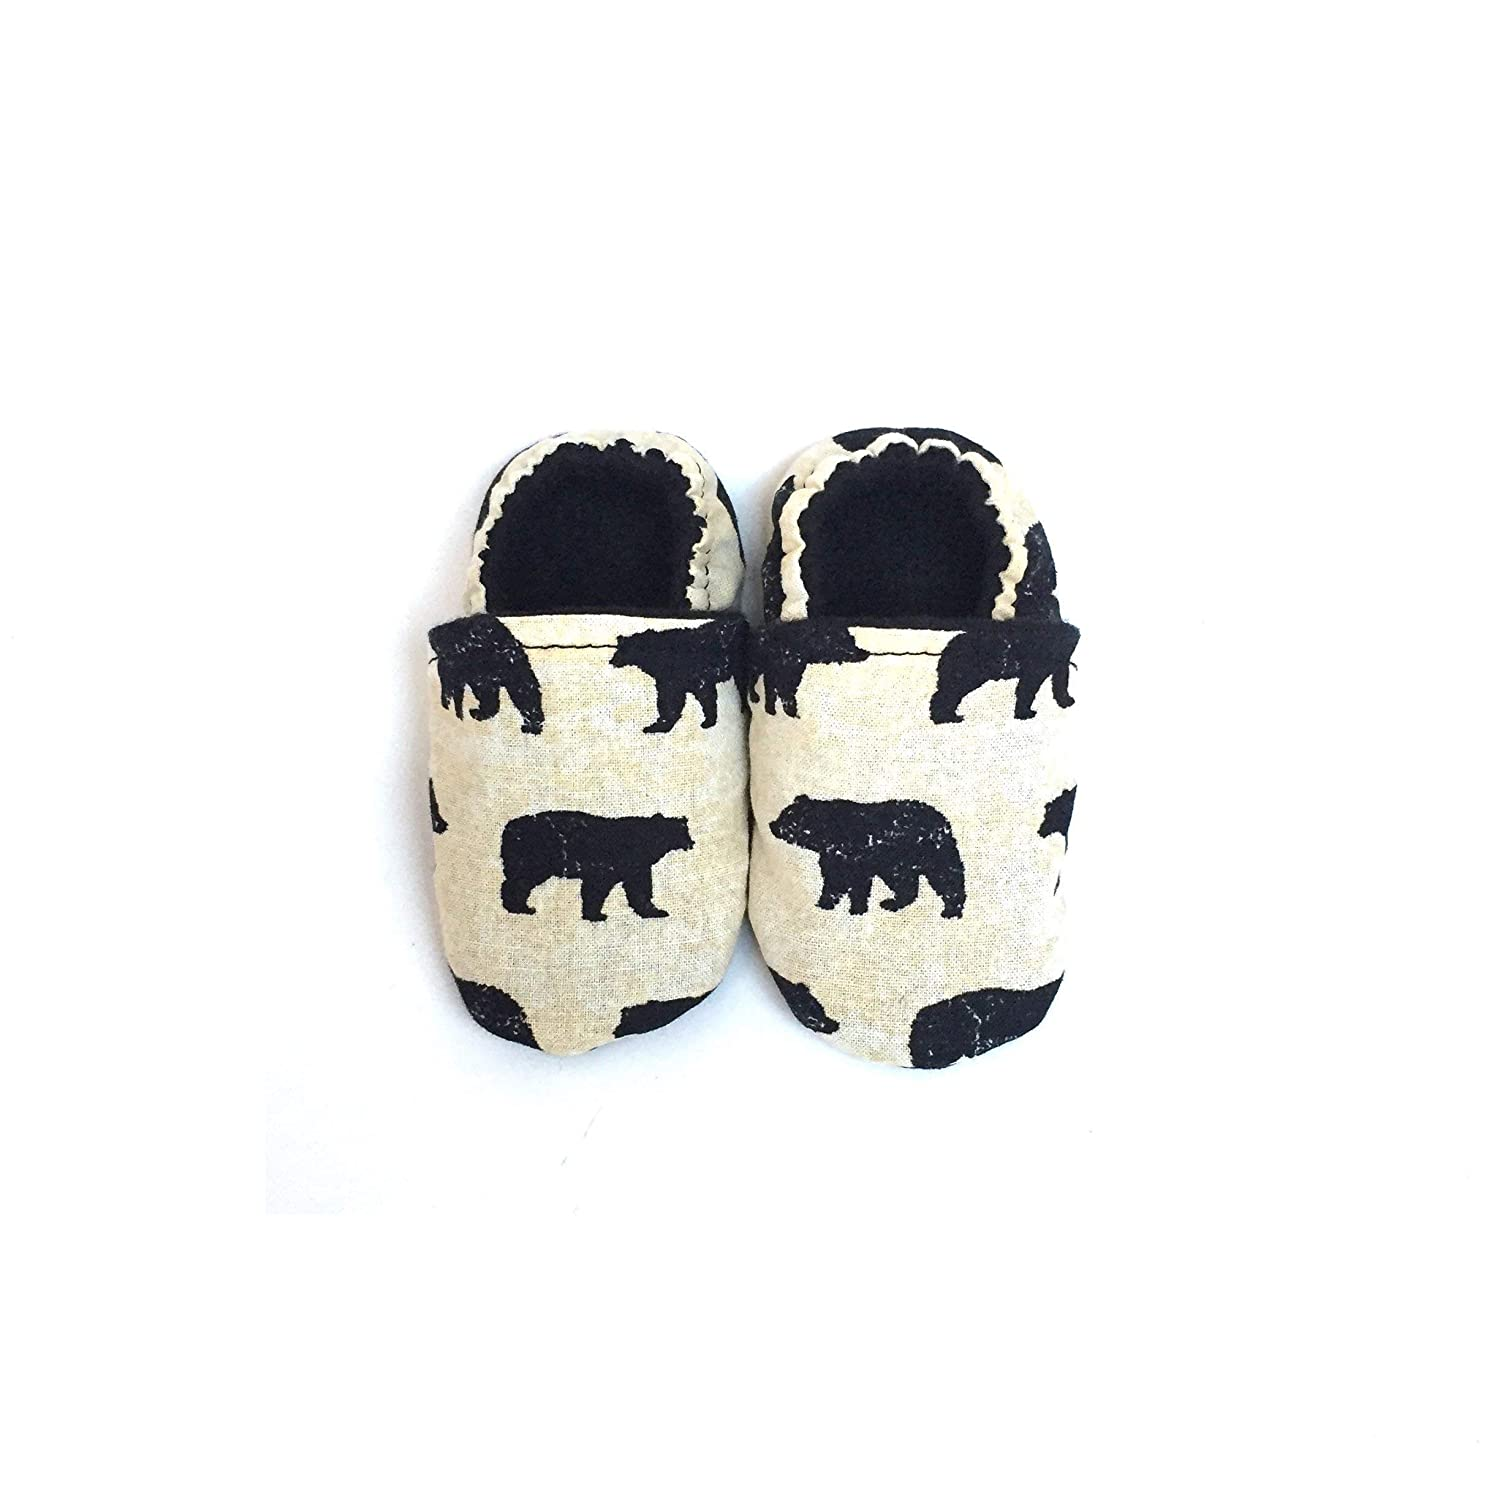 Brown Bear Baby Shoes, Soft Sole Baby Shoes, Baby Shoes Girl, Baby Shoes Boy, Baby Shoes Unisex, Baby Shoes 0-6 months, Baby Shoes 6-12 months, Baby Shoes 12-18 months, Baby Shoes 18-24 months.